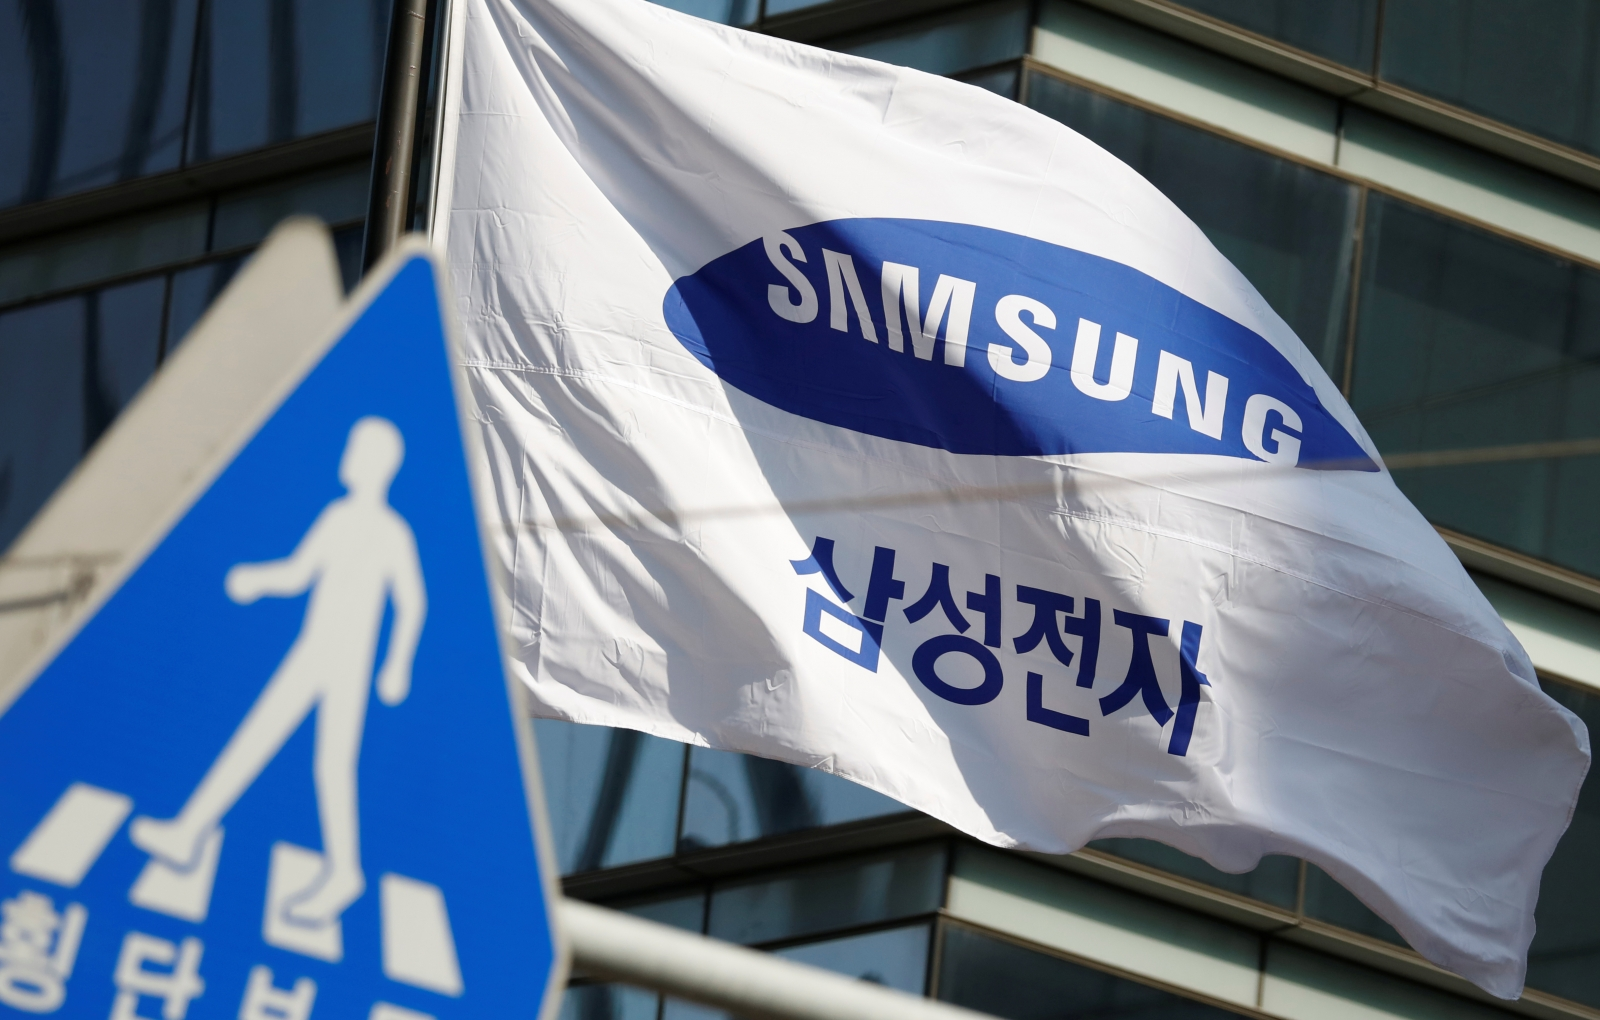 Samsung launches product quality improvements office